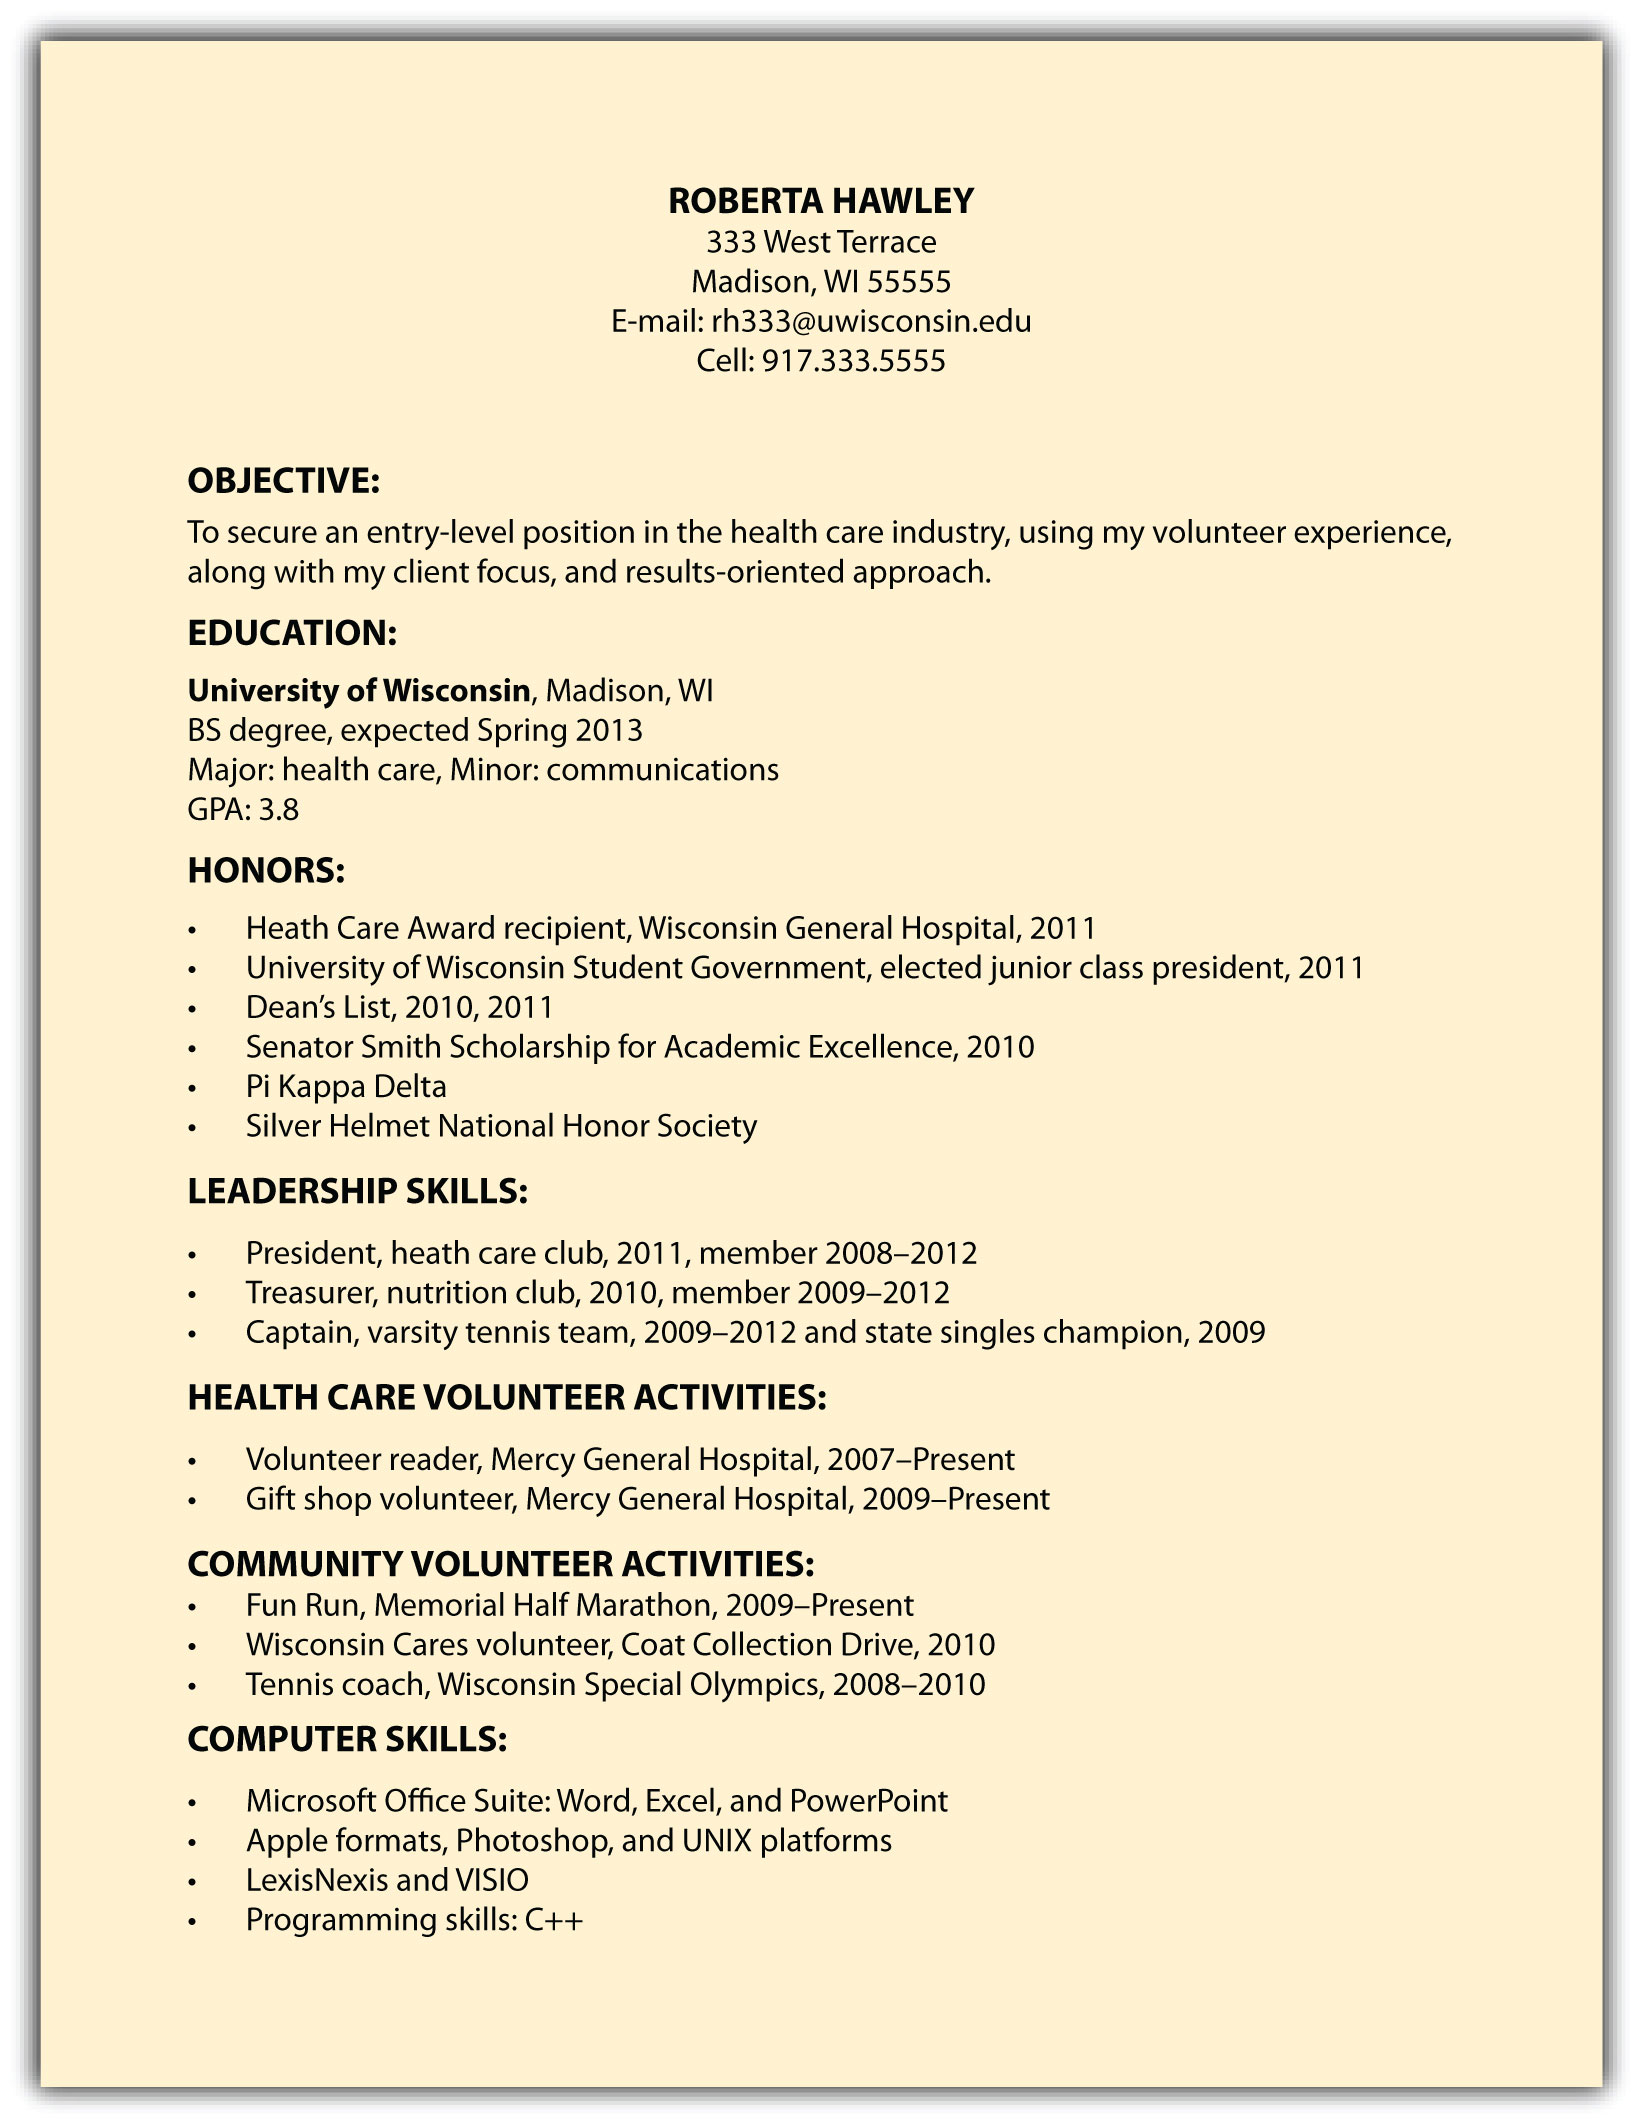 Fresh Essays - making a resume for a 15 year old